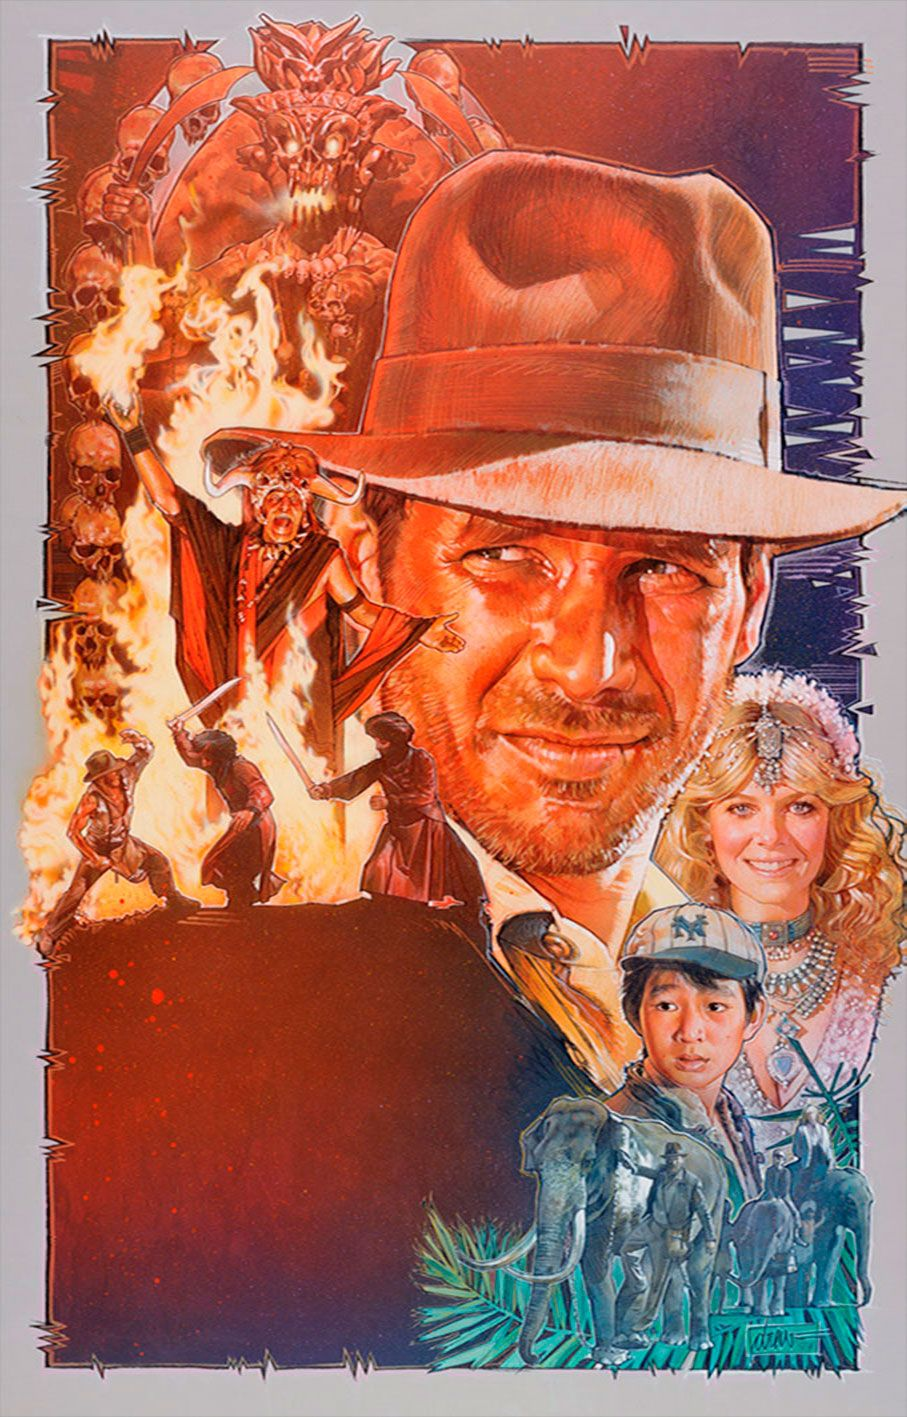 "Indiana Jones and the Temple of Doom  Medium: Acrylic paints & colored pencils on gessoed board Size: 30x40 inches Year 1984 If adventure has a name... it must be Indiana Jones. Signed and dated bottom right corner ""drew '84"" © Copyright Lucasfilm Ltd. 1984"